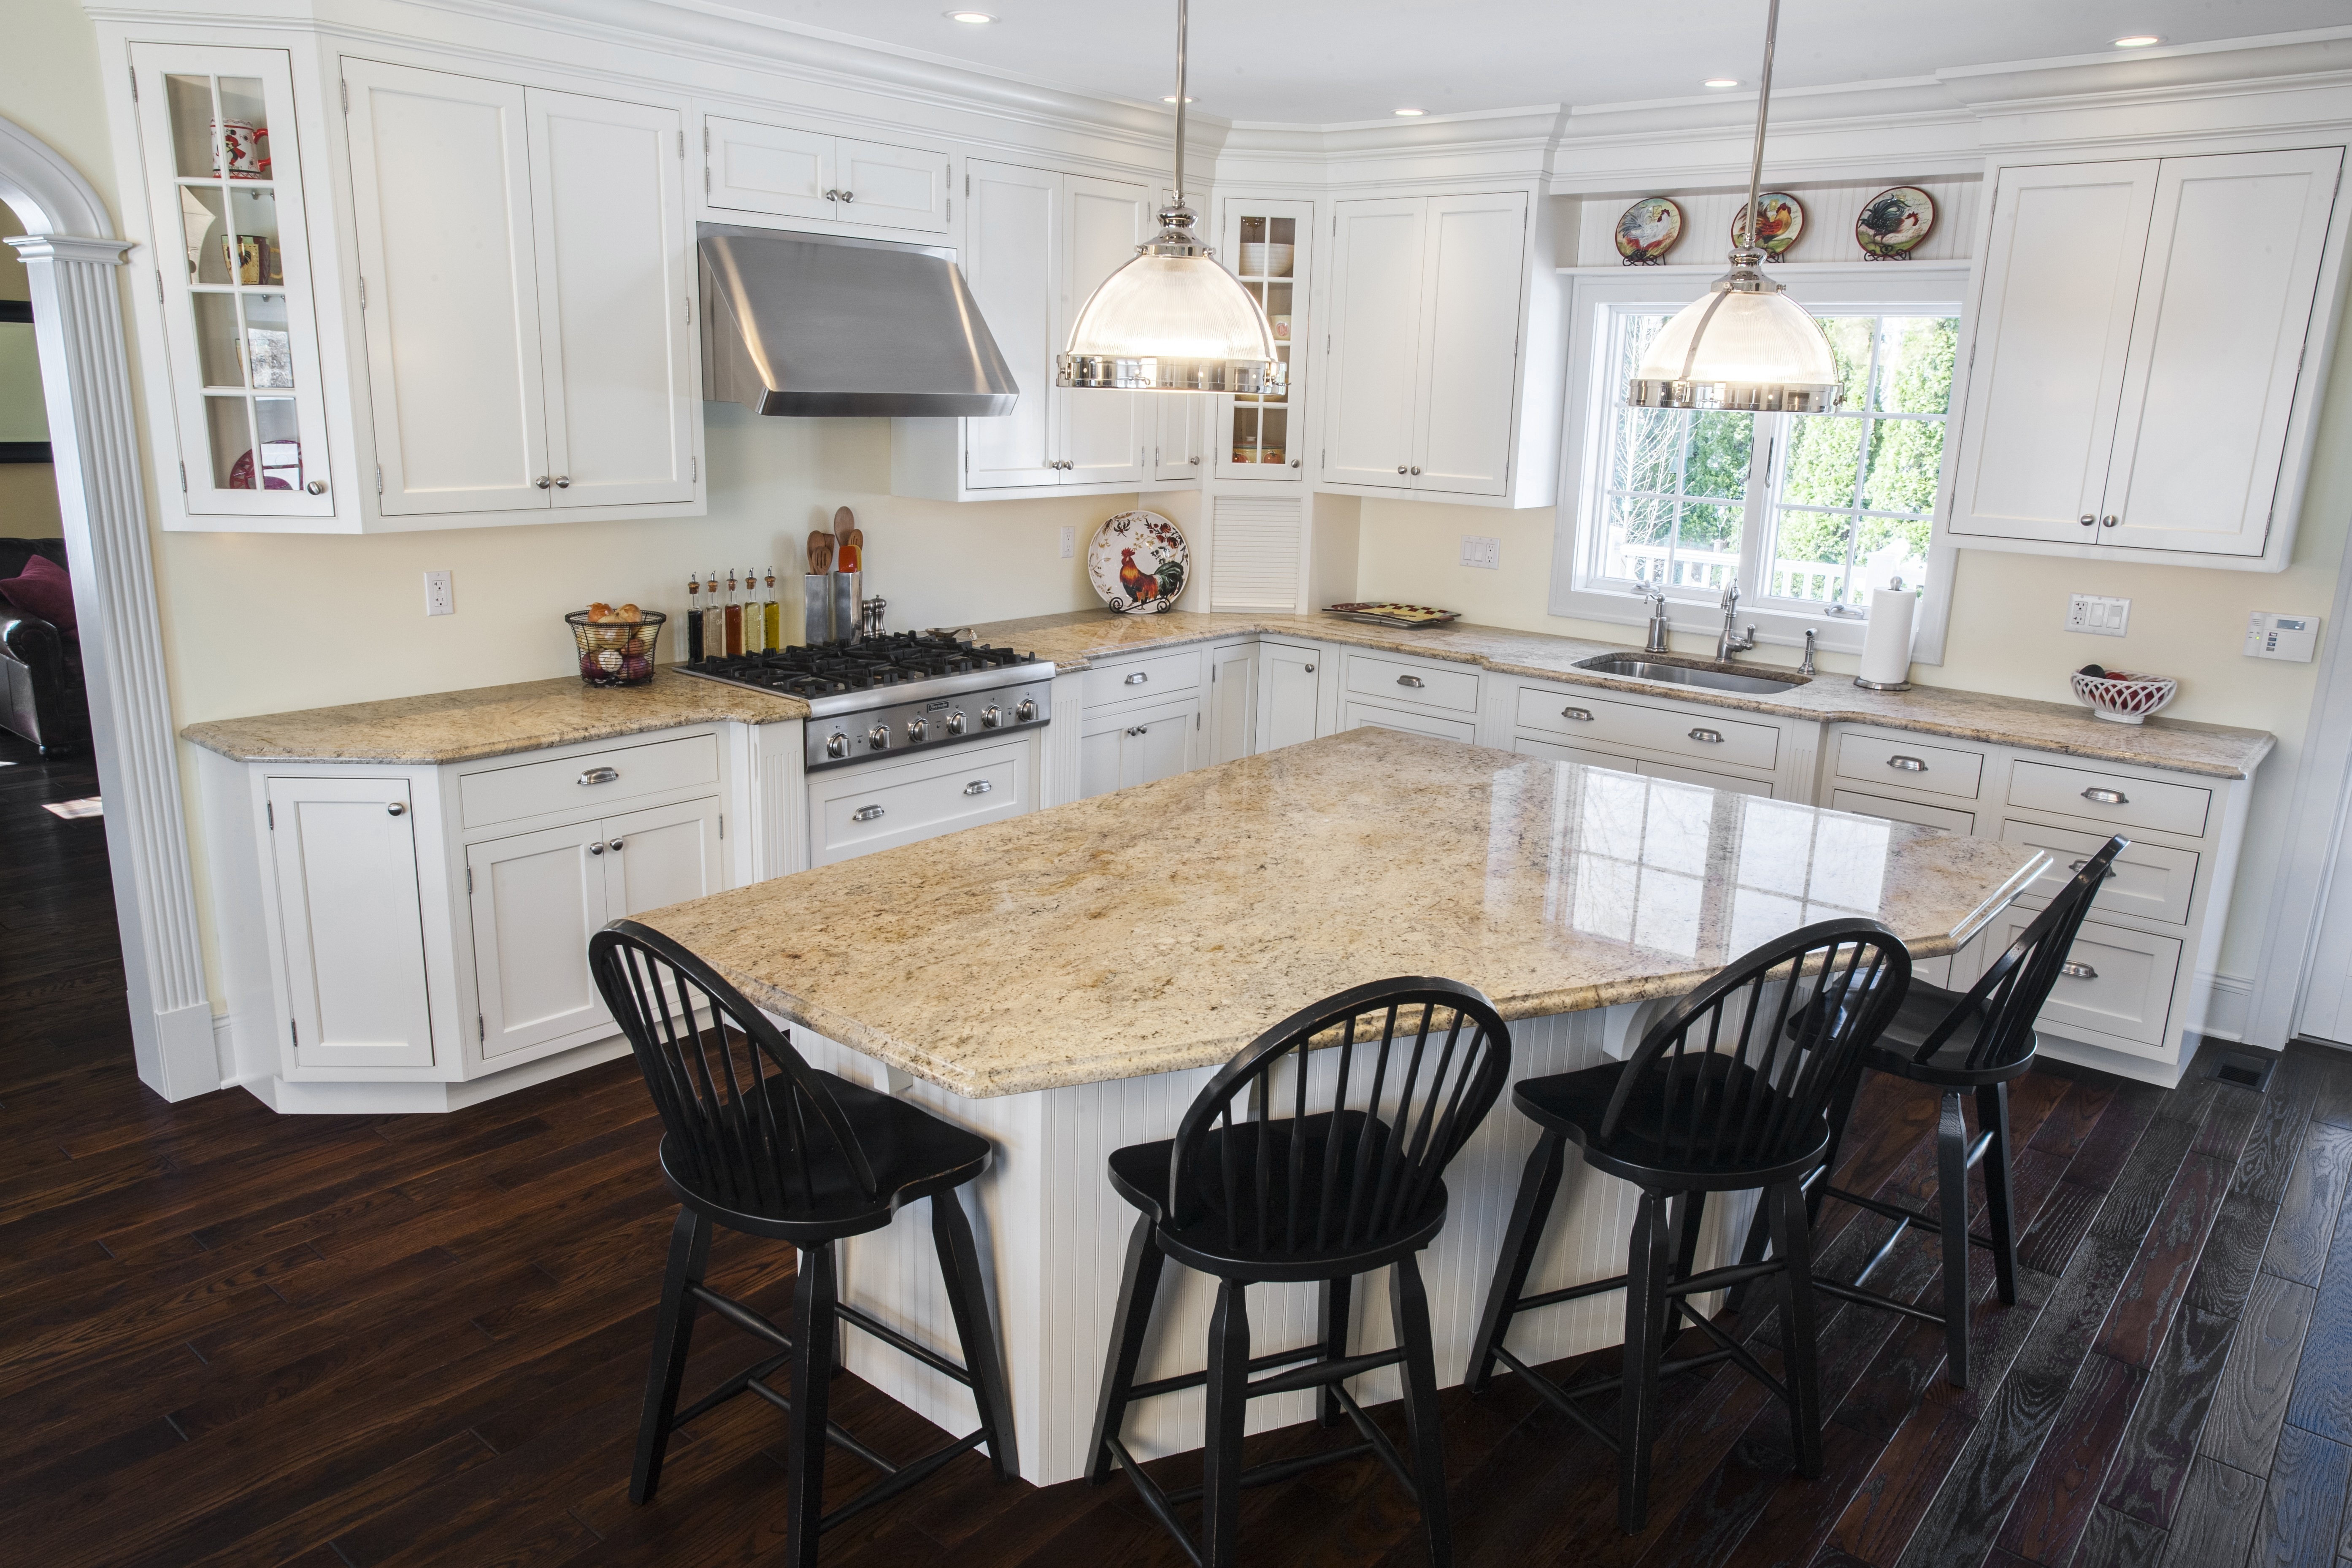 Exceptionnel The Style Of This Kitchen Is Modern And Simple With Light Colored Astoria Granite  Countertops